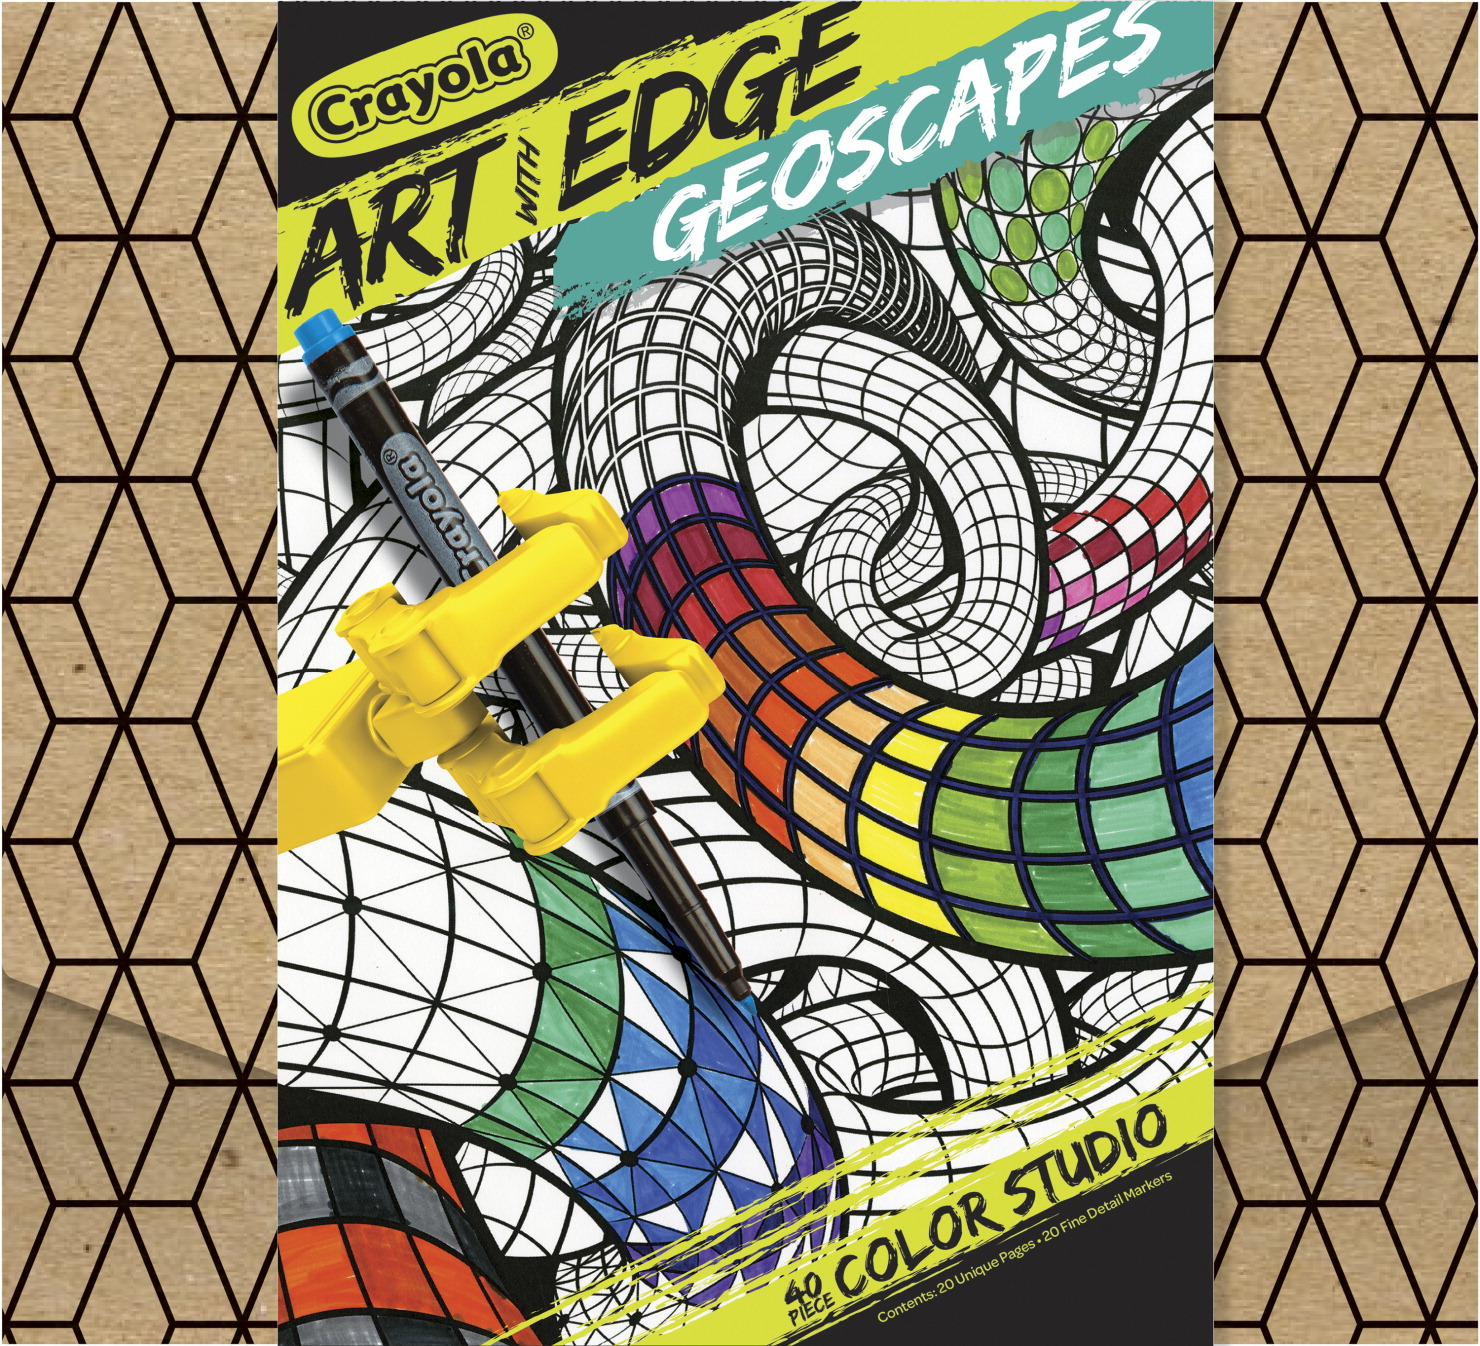 Crayola Art With Edge Geoscapes Coloring Set, 20 Sheets and 20 Fine Line Markers